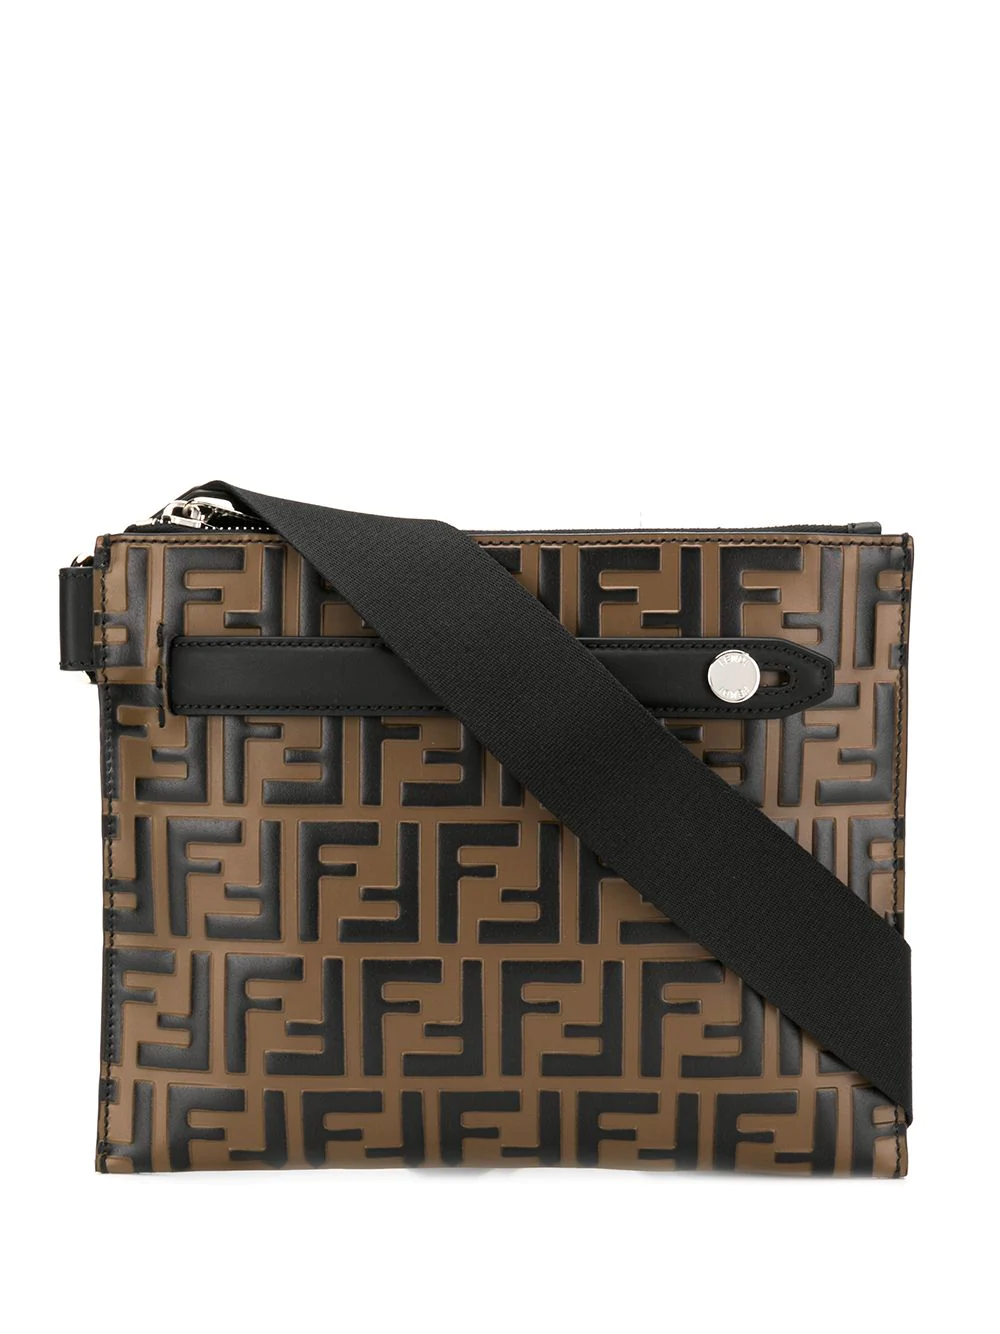 2cb7a43263 Fendi Ff Striped Belt Bag - Brown